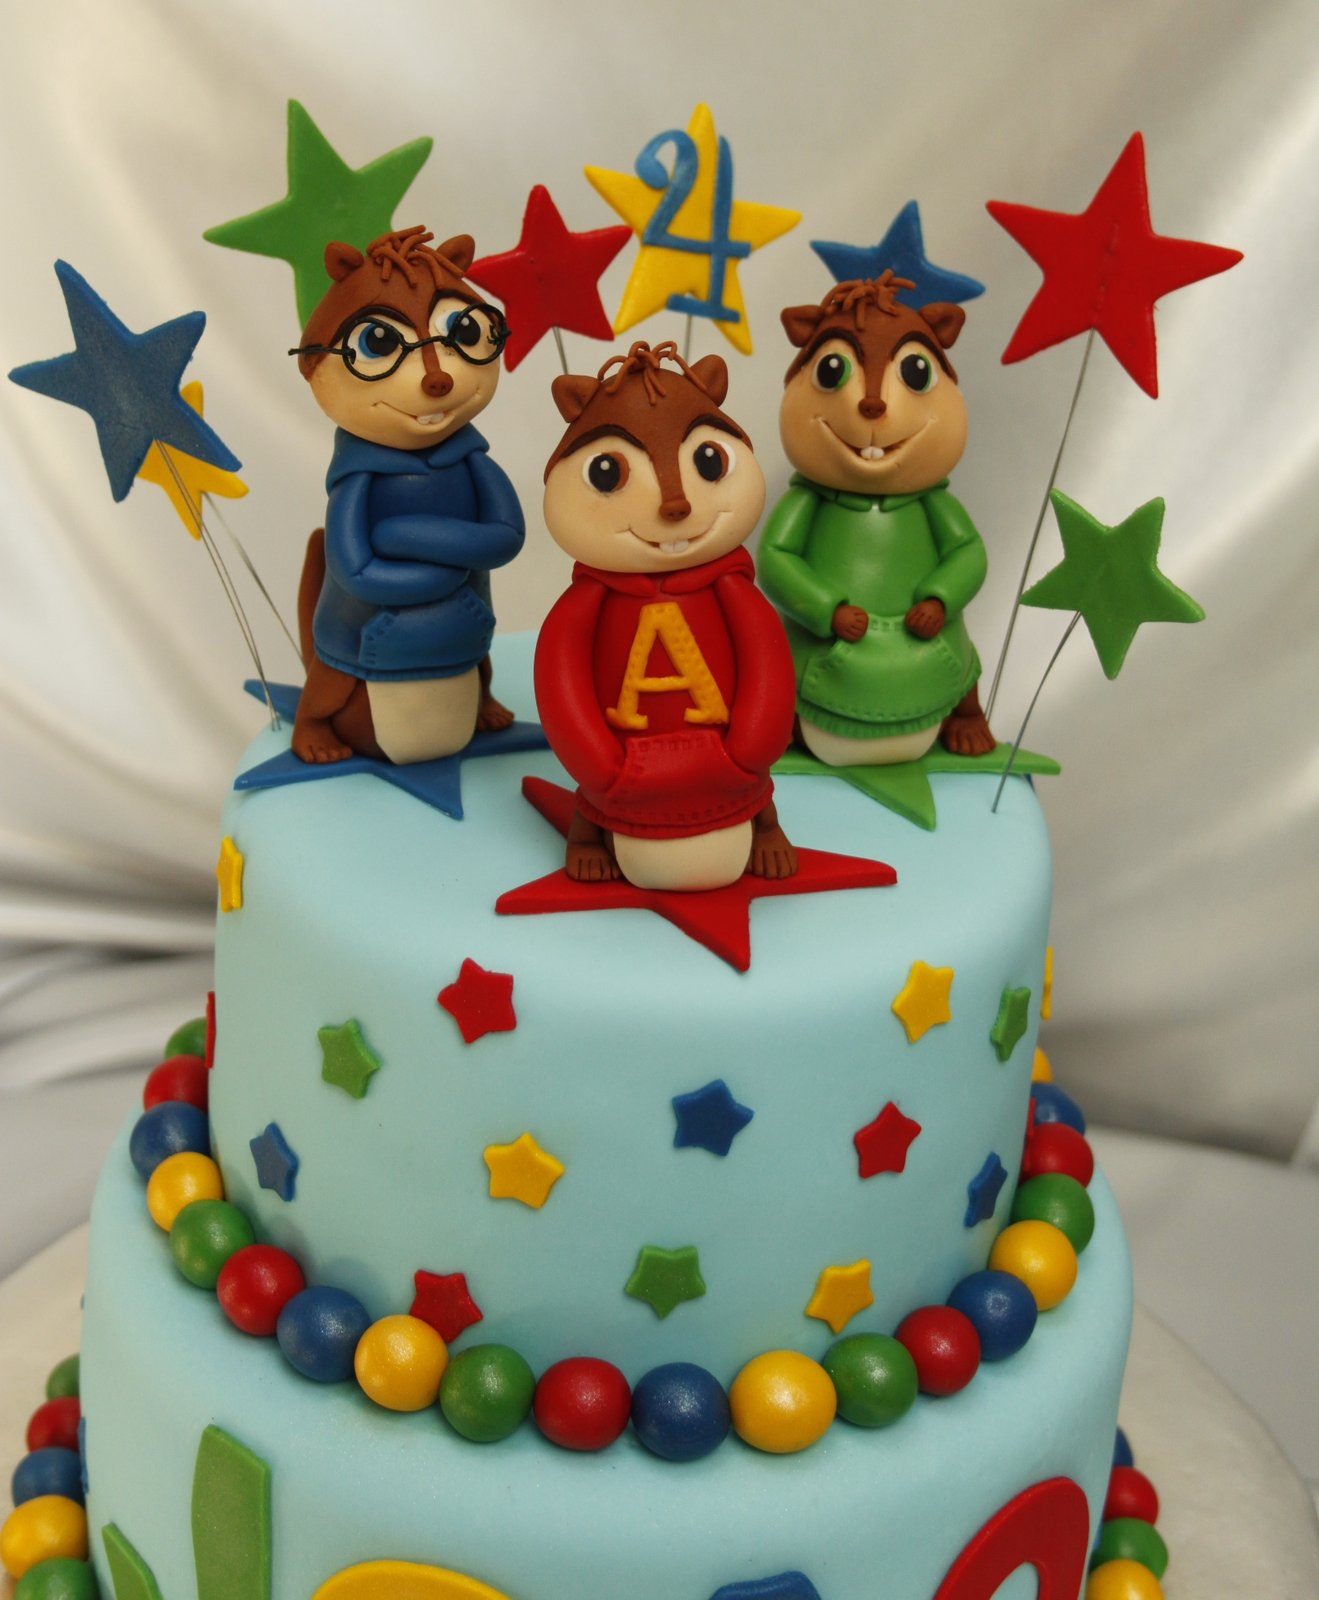 Alvin and Chipmunks Cake